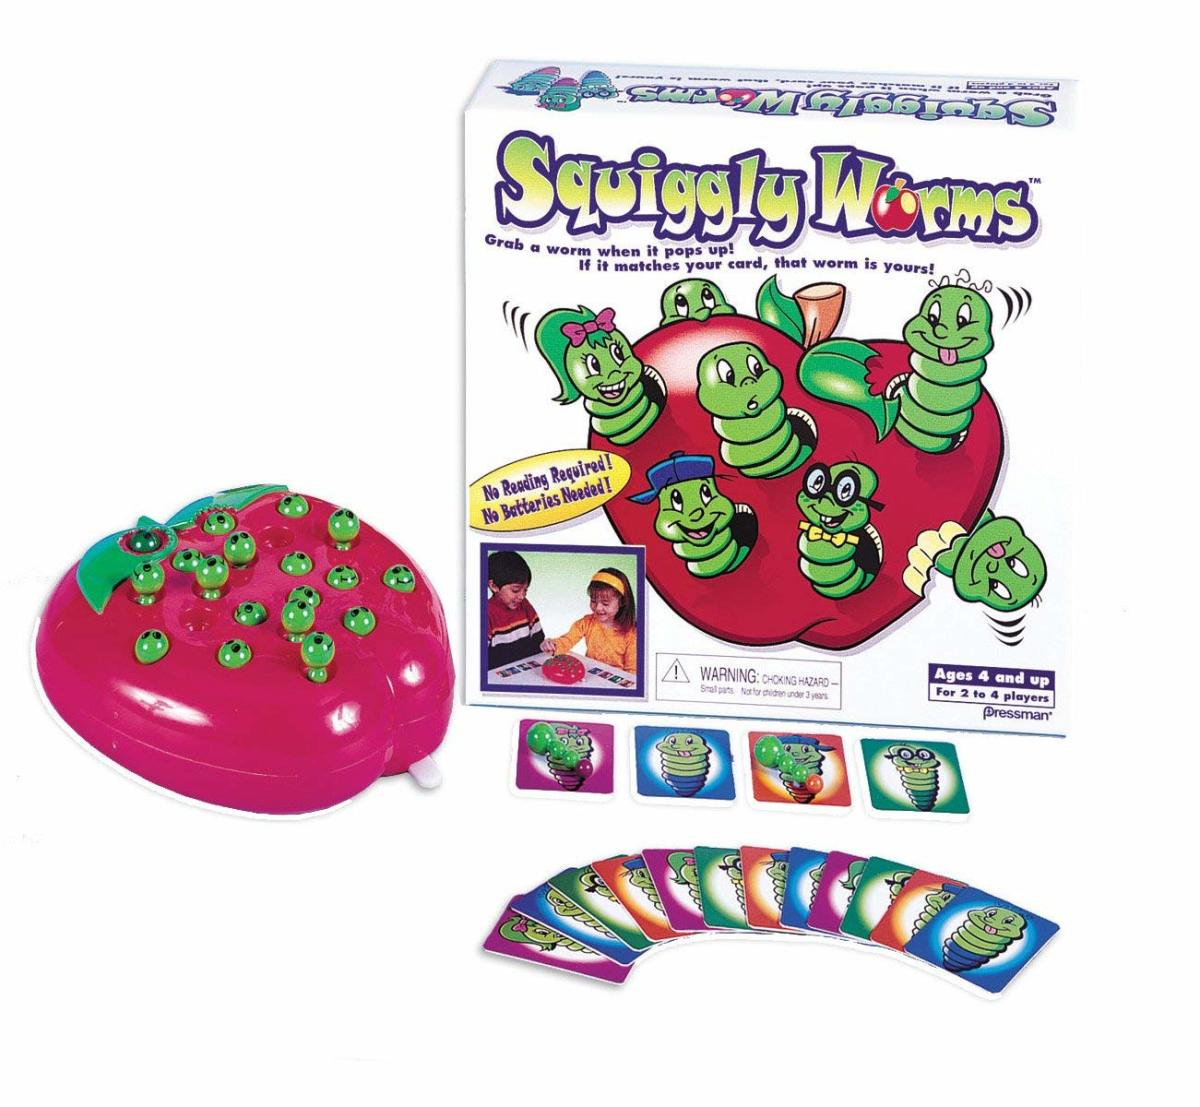 Squiggly Worms game